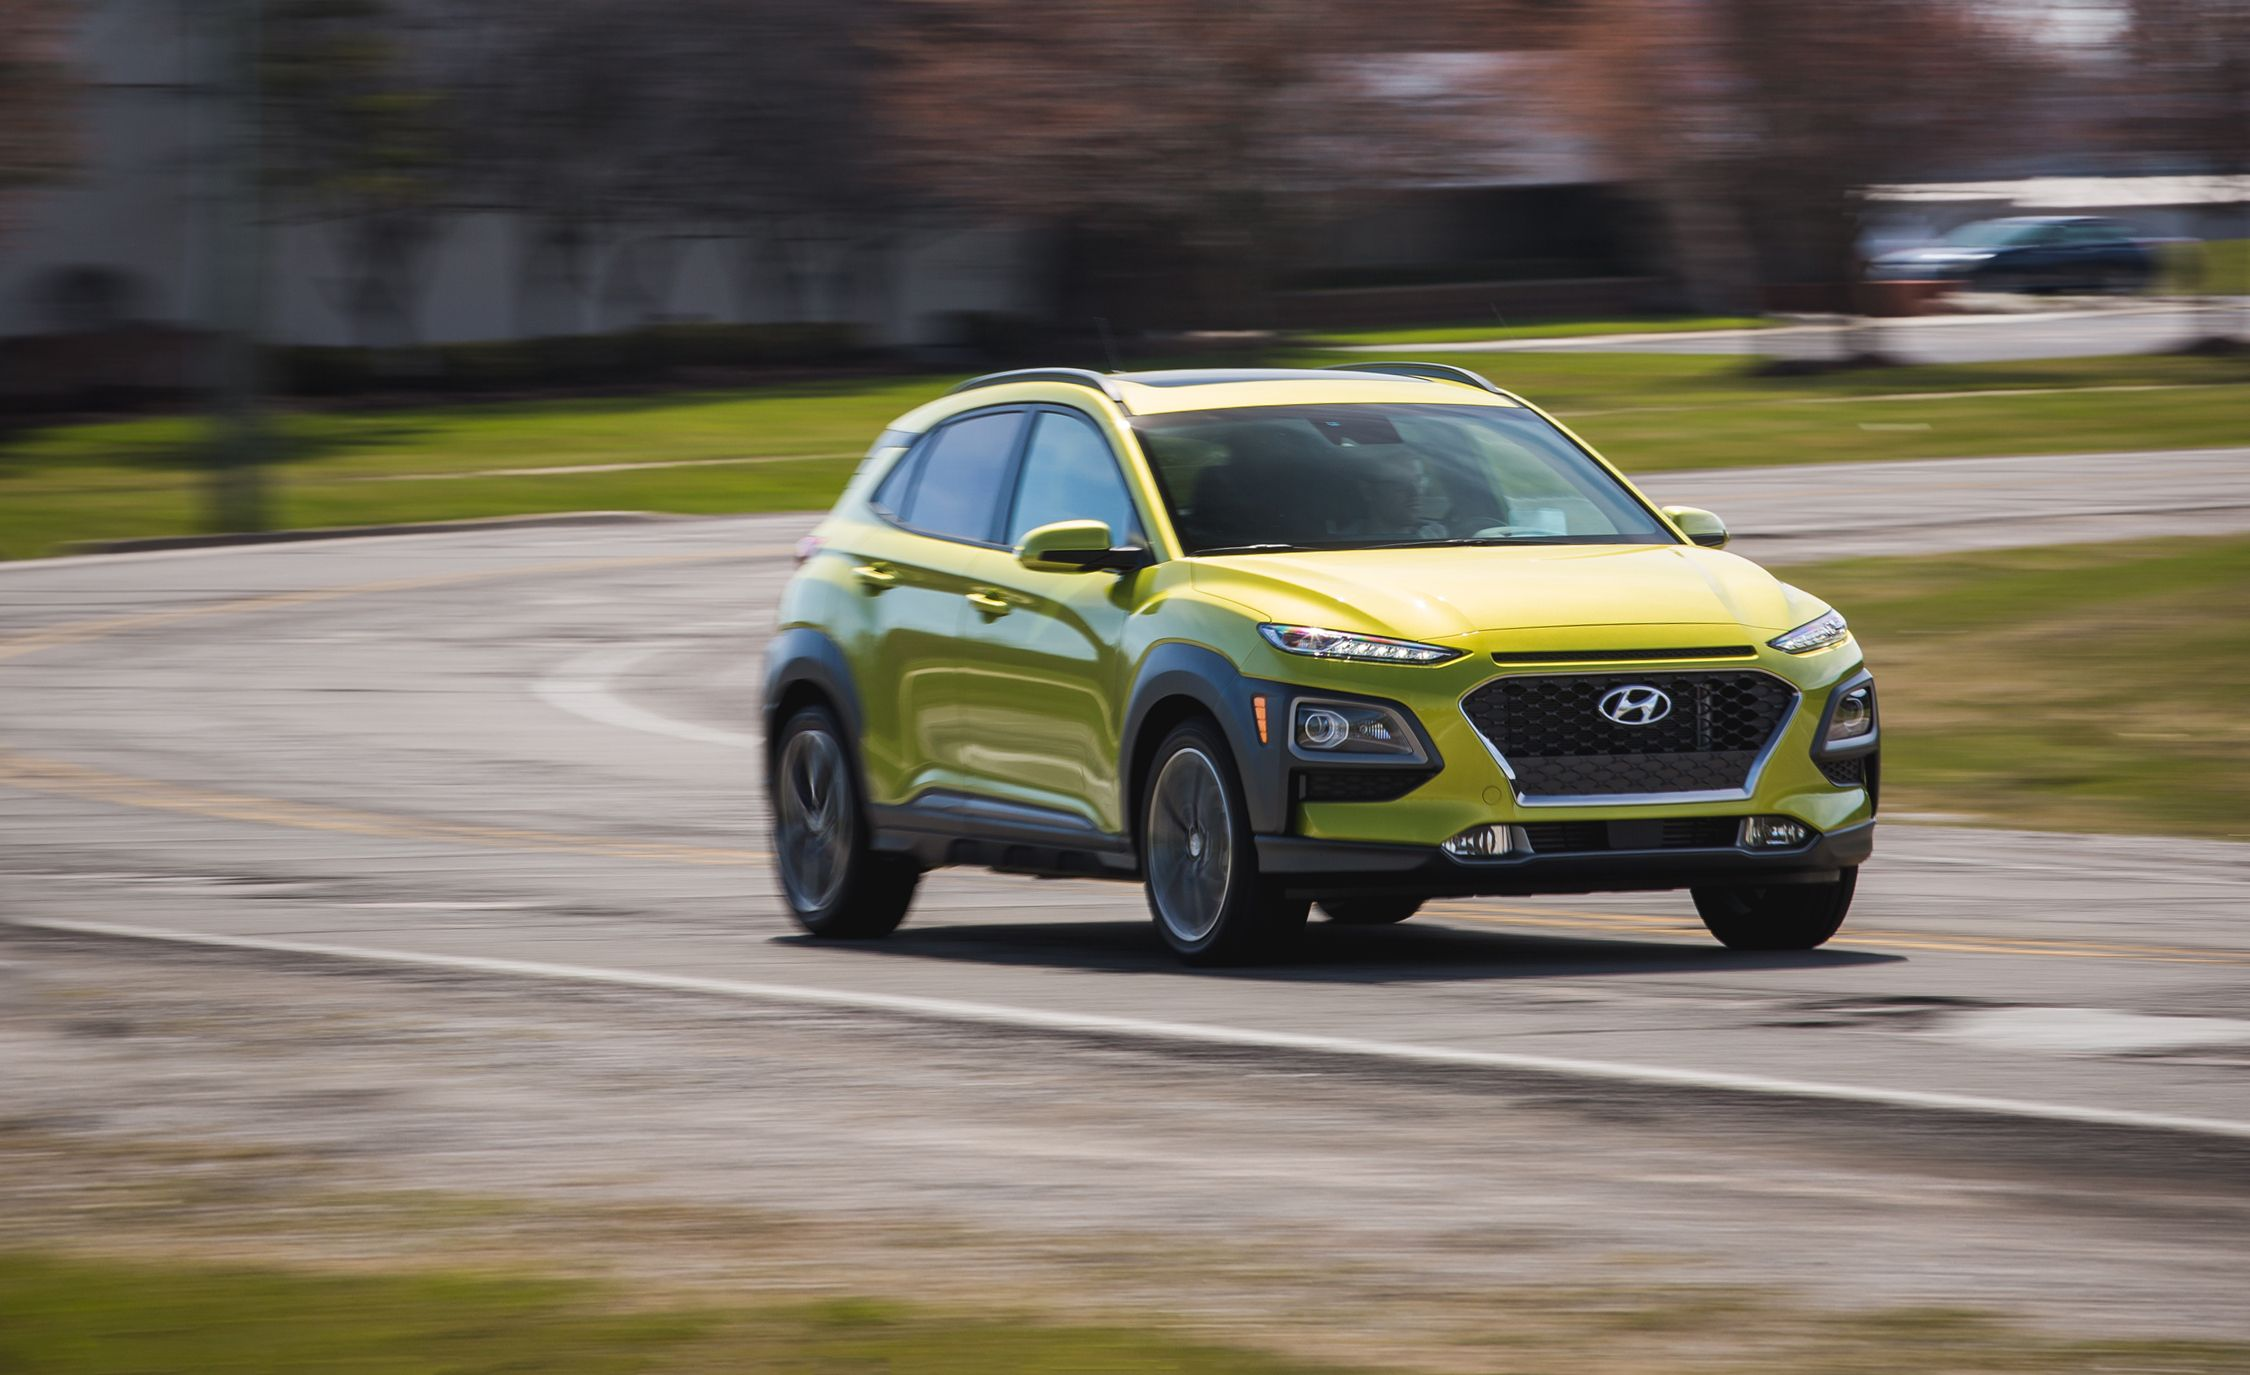 Hyundai Kona Reviews Hyundai Kona Price Photos And Specs Car - Car show display stand for sale